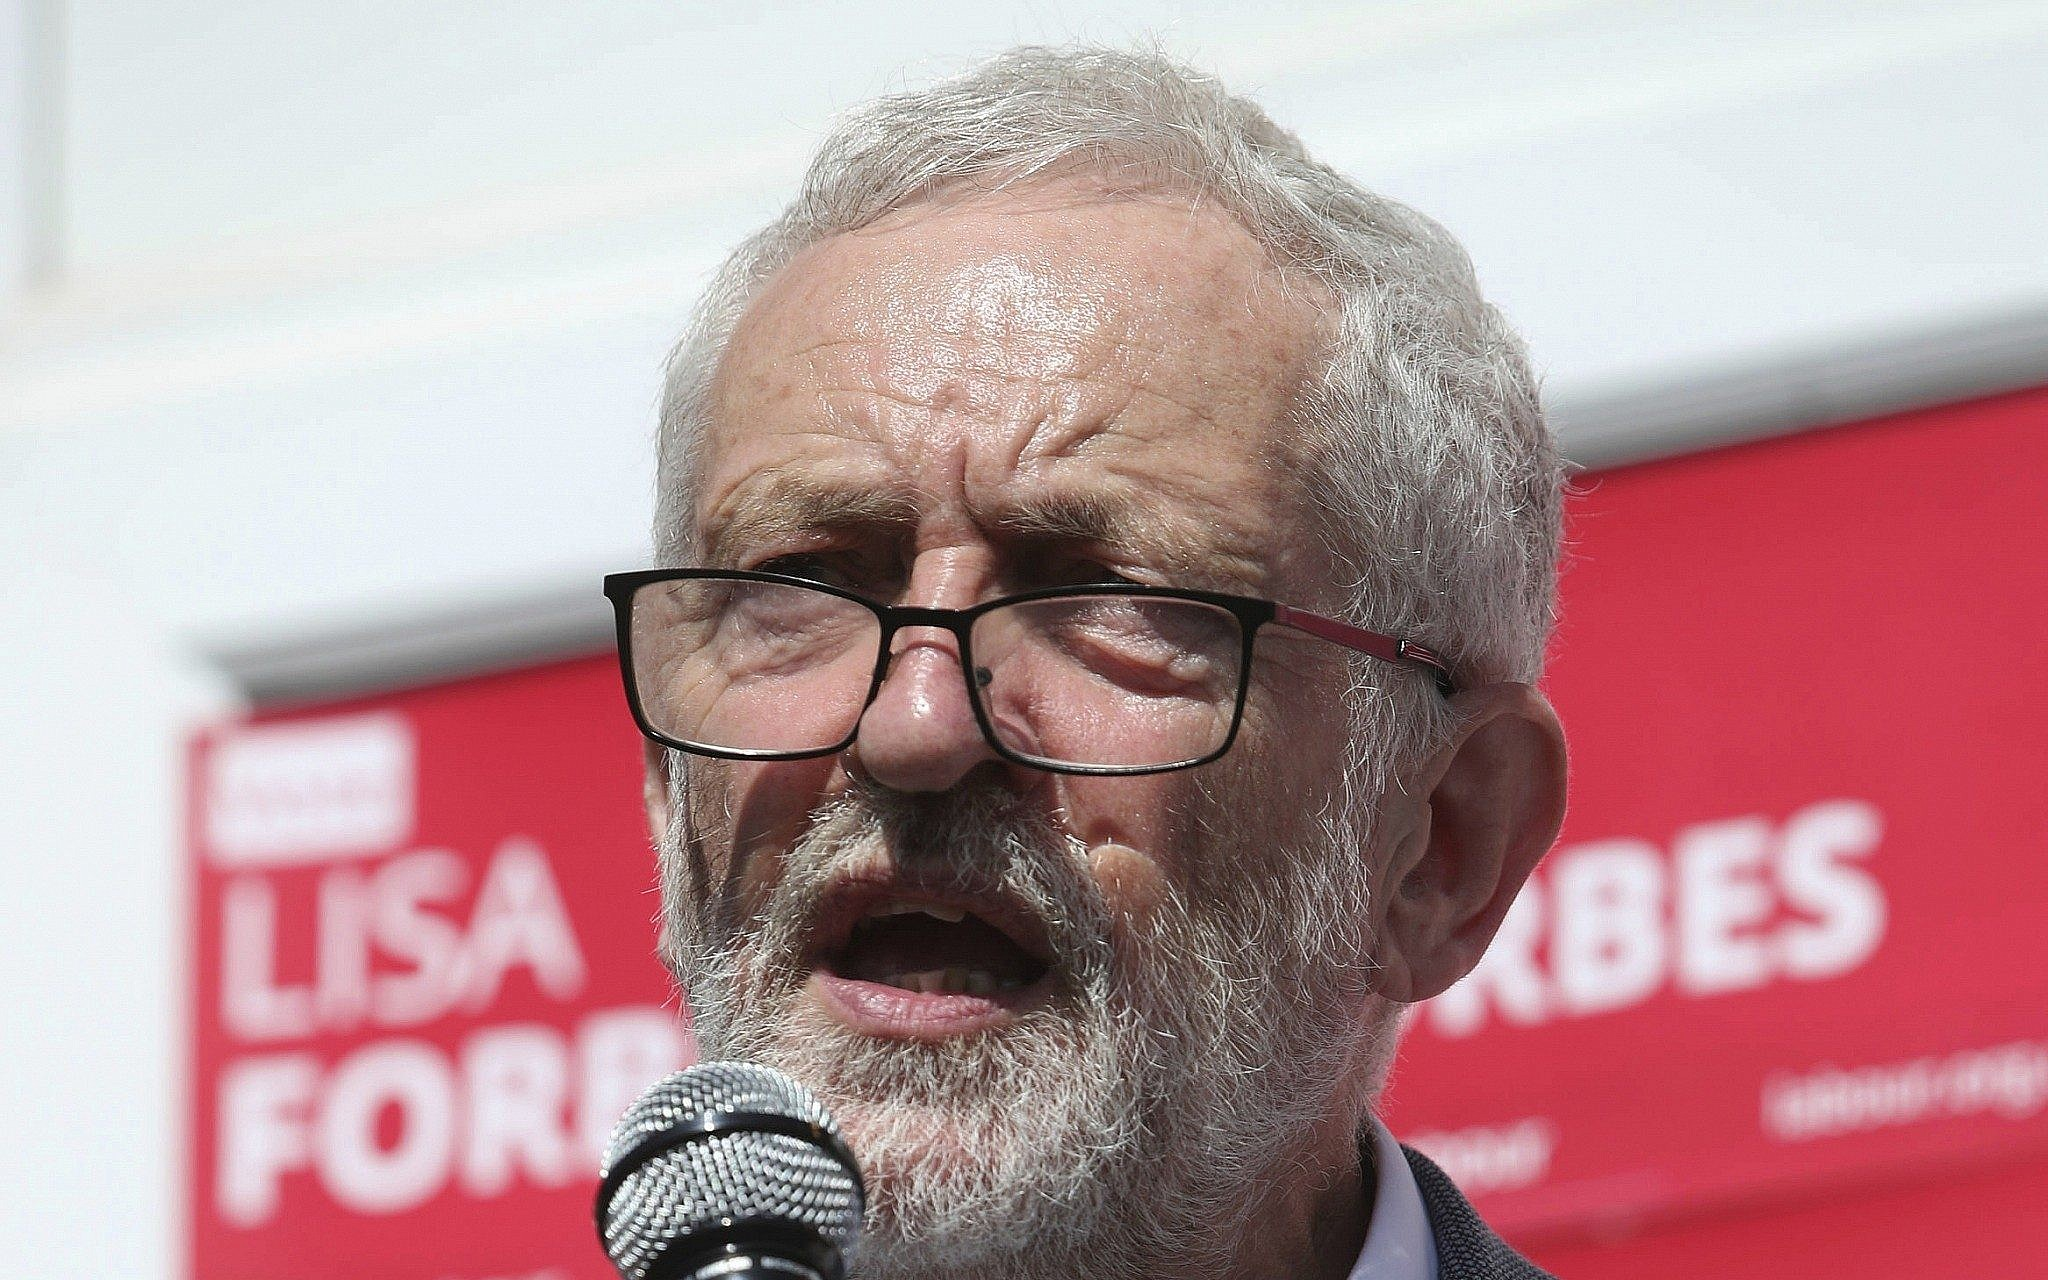 Investigation into anti-Semitism in Labour Party was 'heartbreaking'